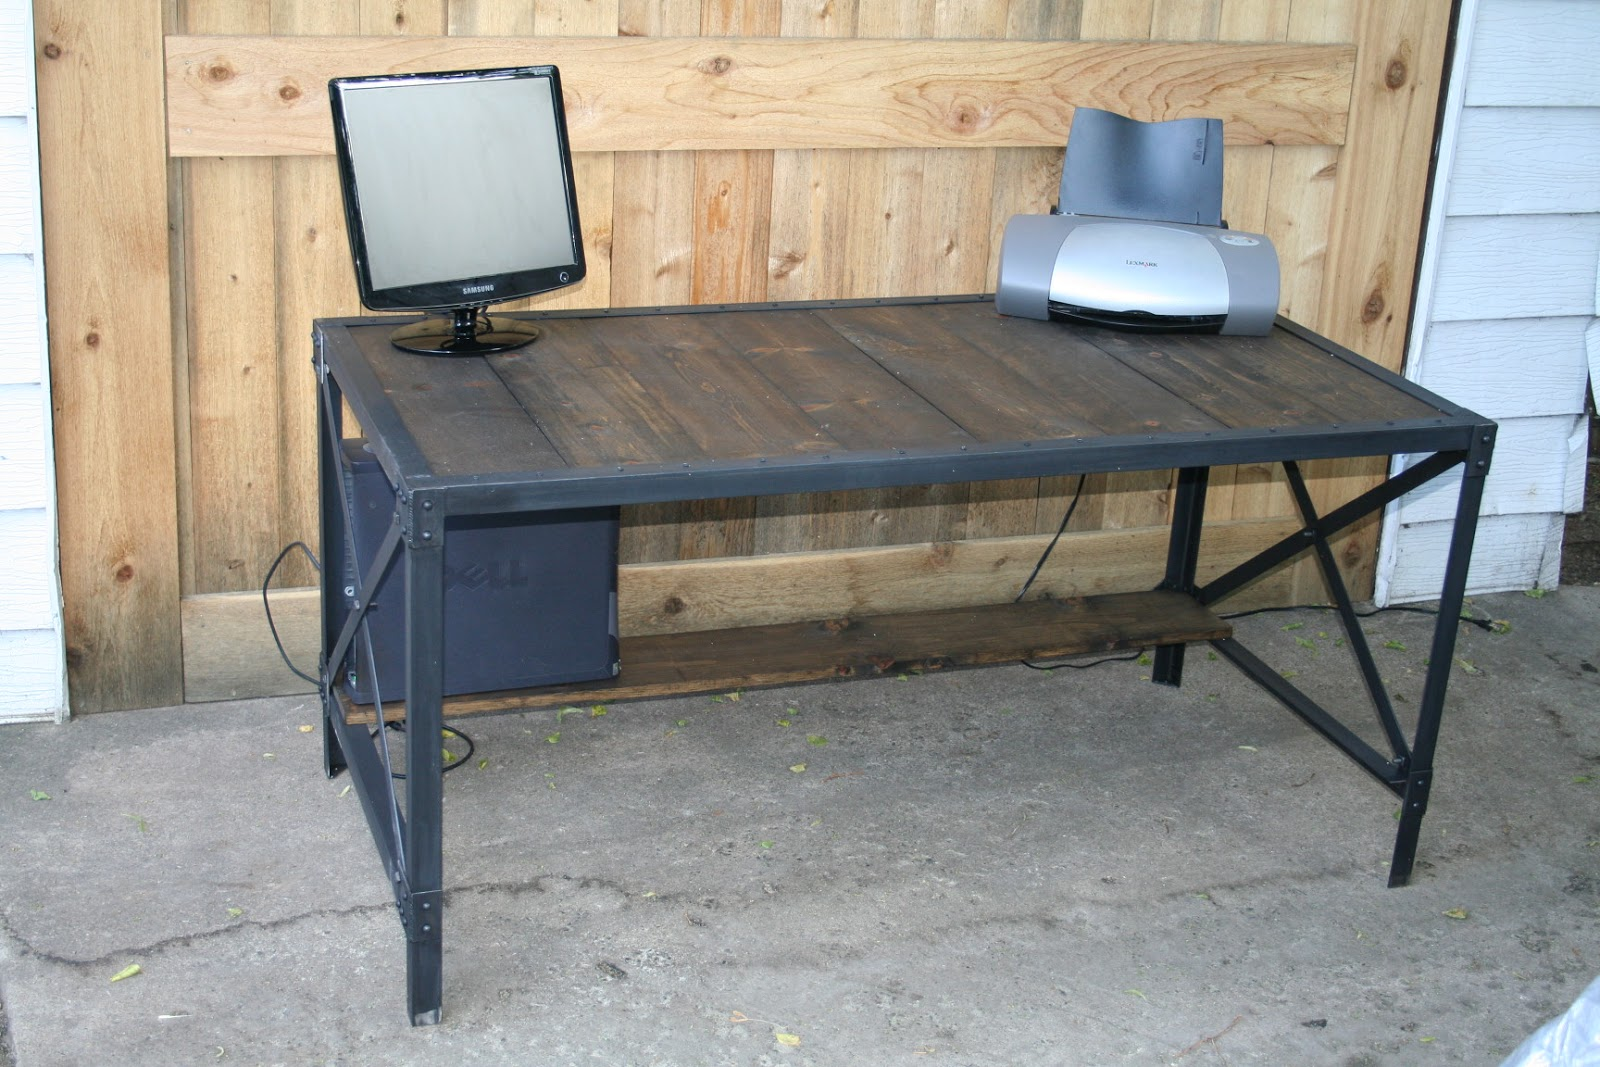 this was a big order of 6 industrial style desks for an office space